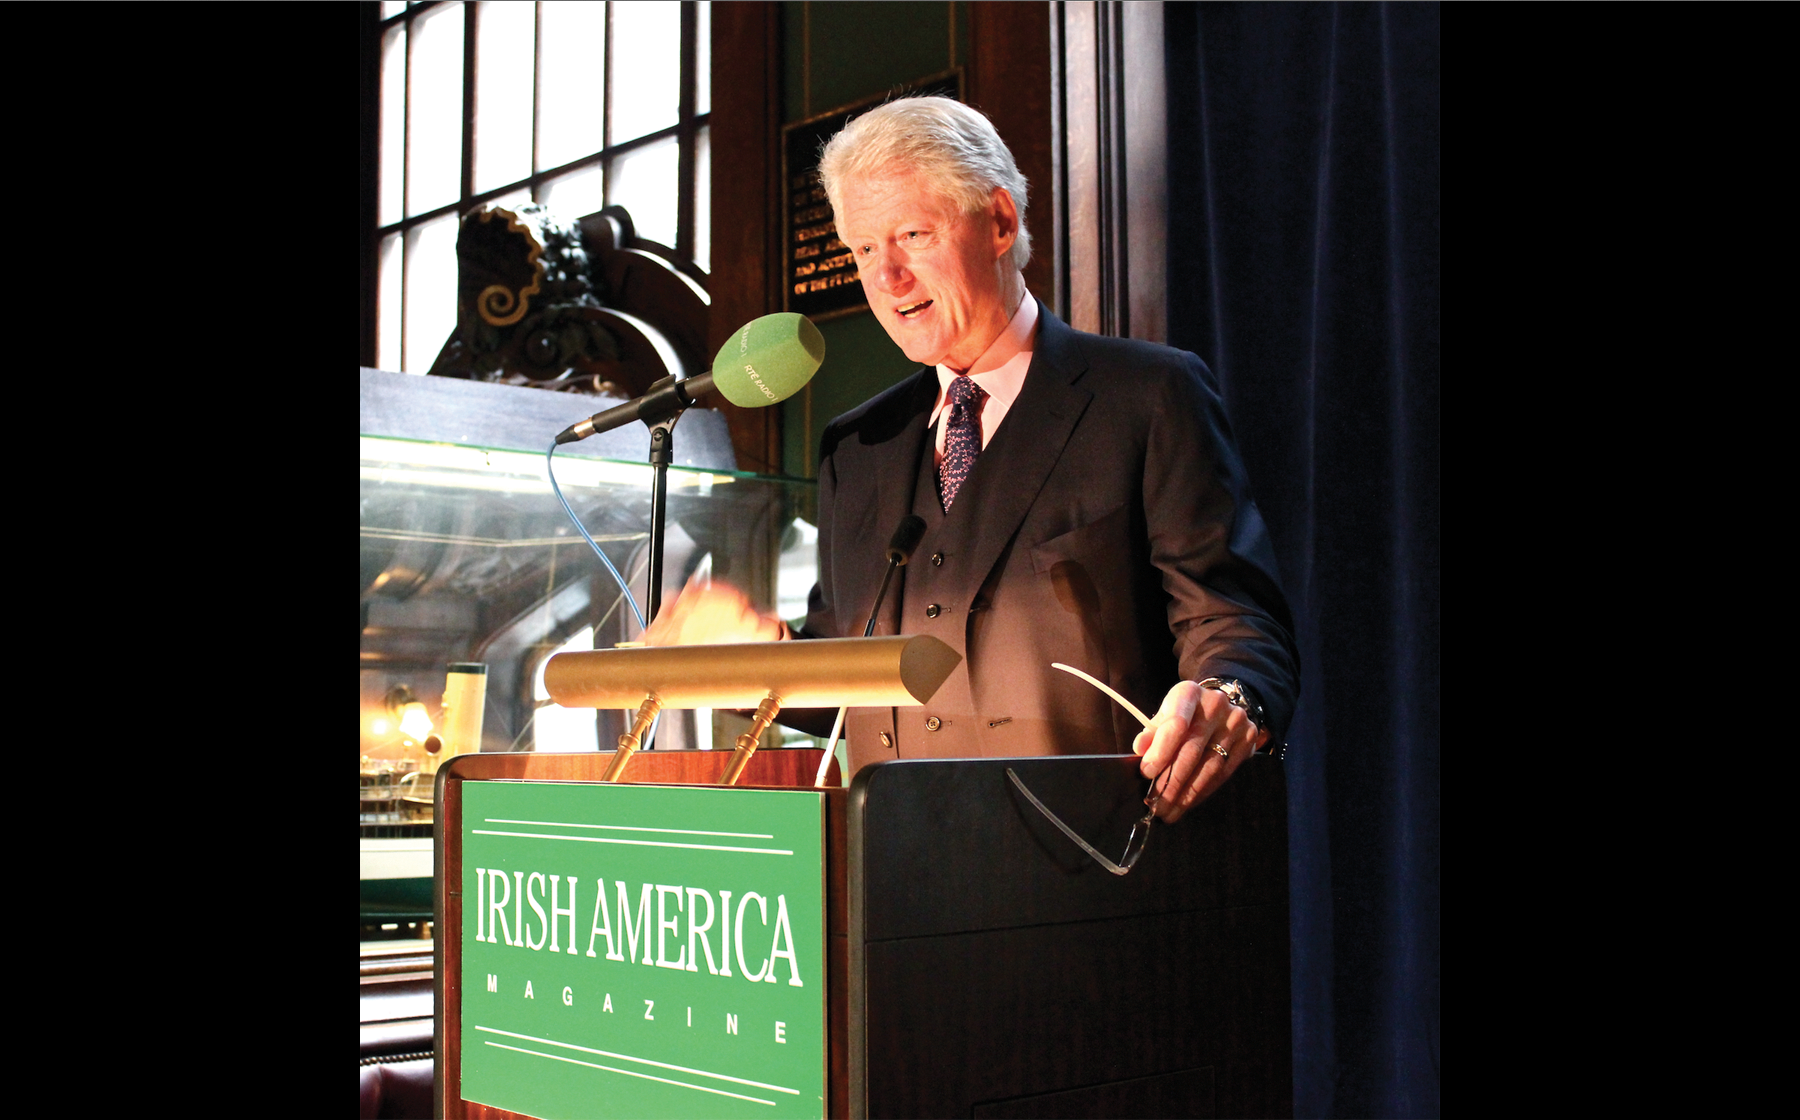 Former President Bill Clinton is inducted into the Irish America Hall of Fame in March, 2011.